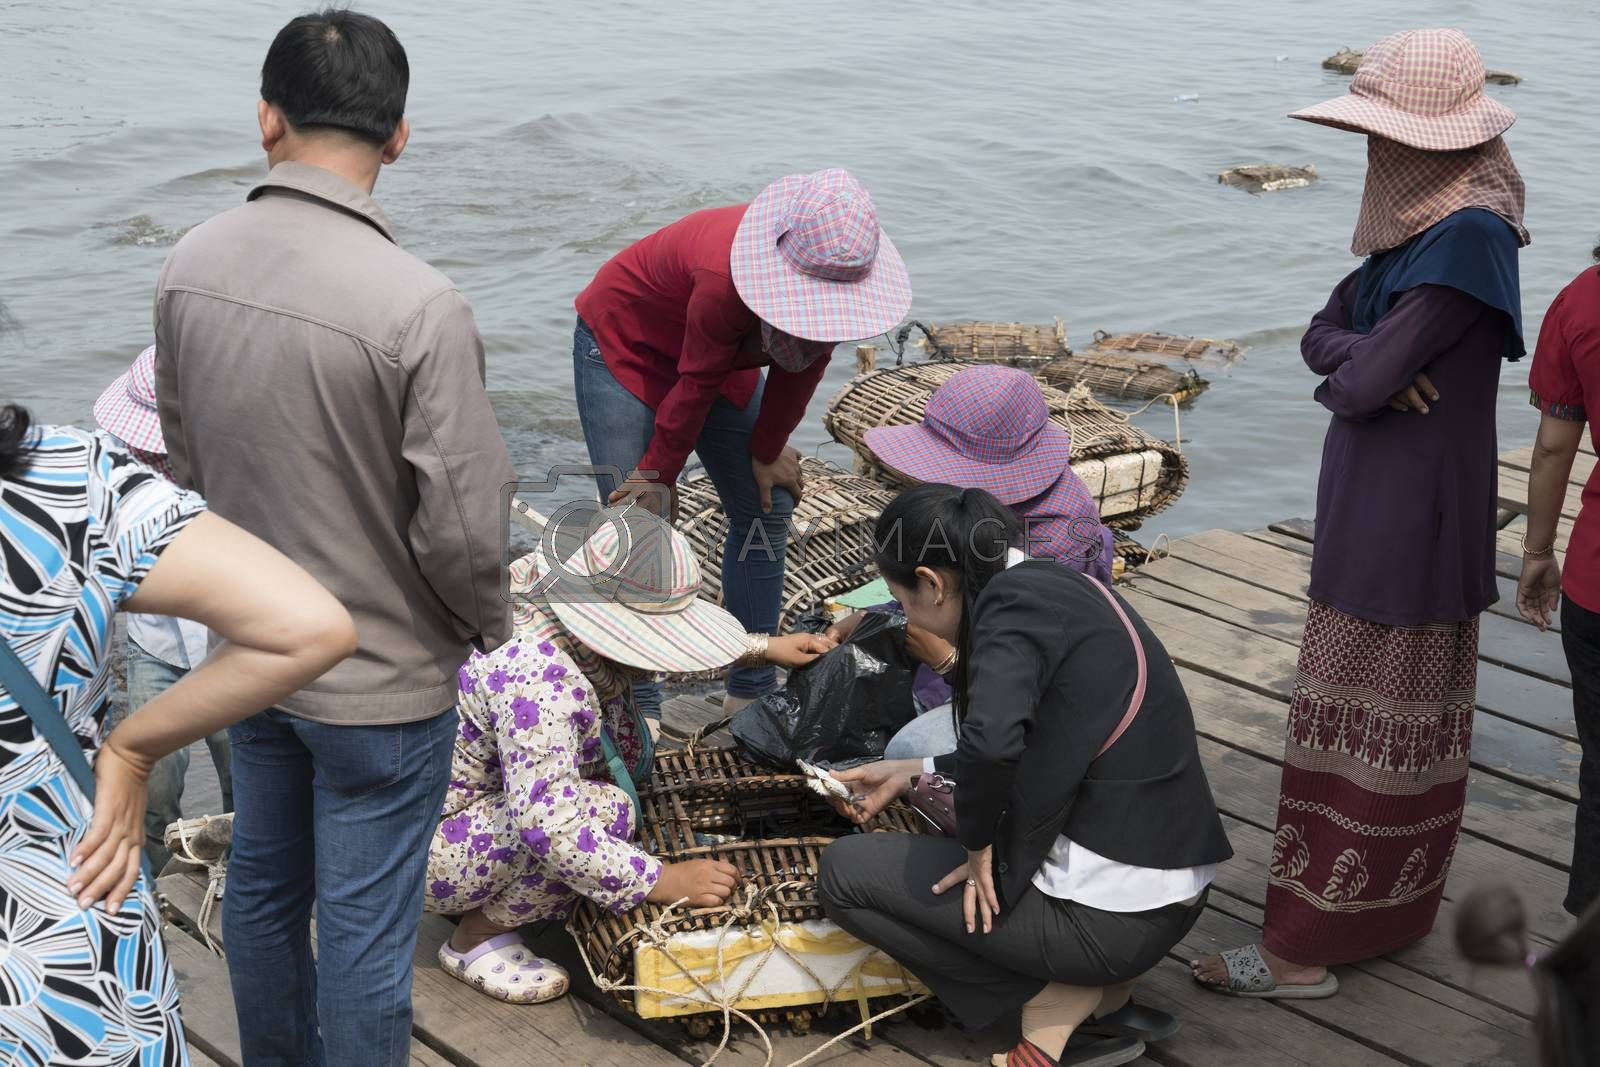 Cambodian lady buying crabs at the local and famous Crab Market of Krong Kaep, Kep Province, Cambodia